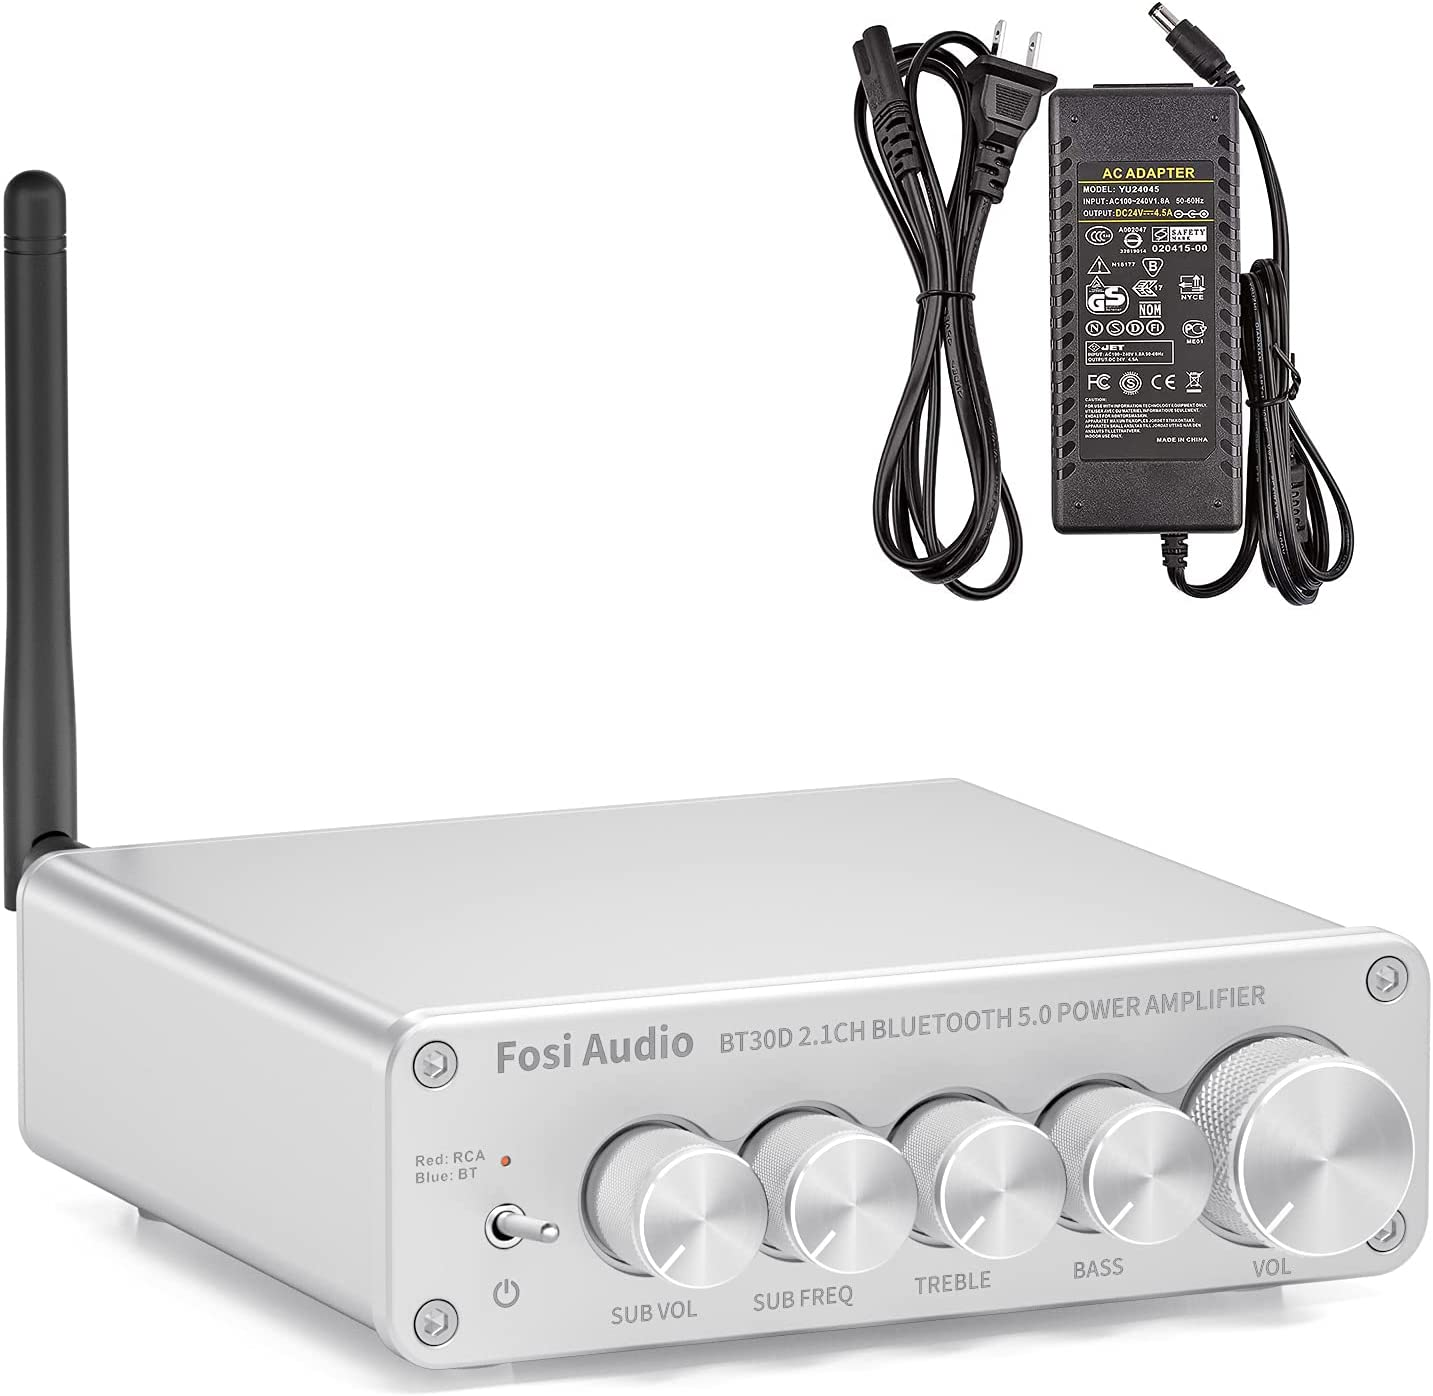 Fosi Audio 50Wx2+100W Mini Bluetooth 5.0 Power Amplifier Mini Hi-Fi Stereo 2.1 Channel Wireless Receiver Amp for Home Outdoor Passive Speakers/Powered Subwoofer (Sliver)